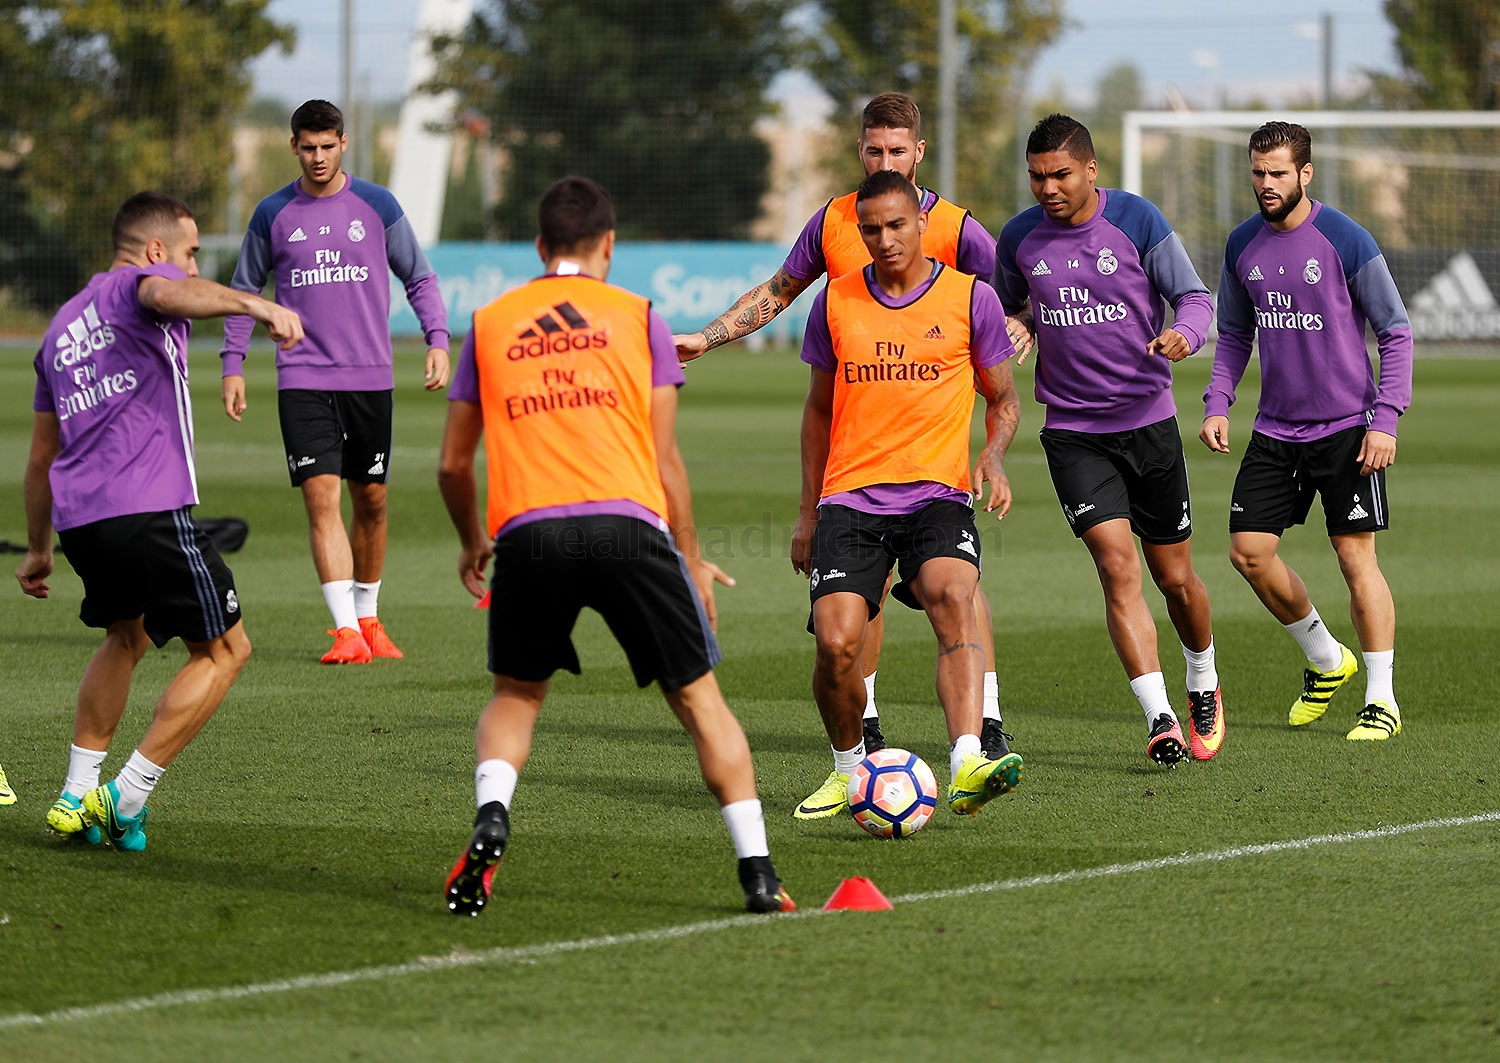 Real Madrid - Entrenamiento del Real Madrid - 17-09-2016